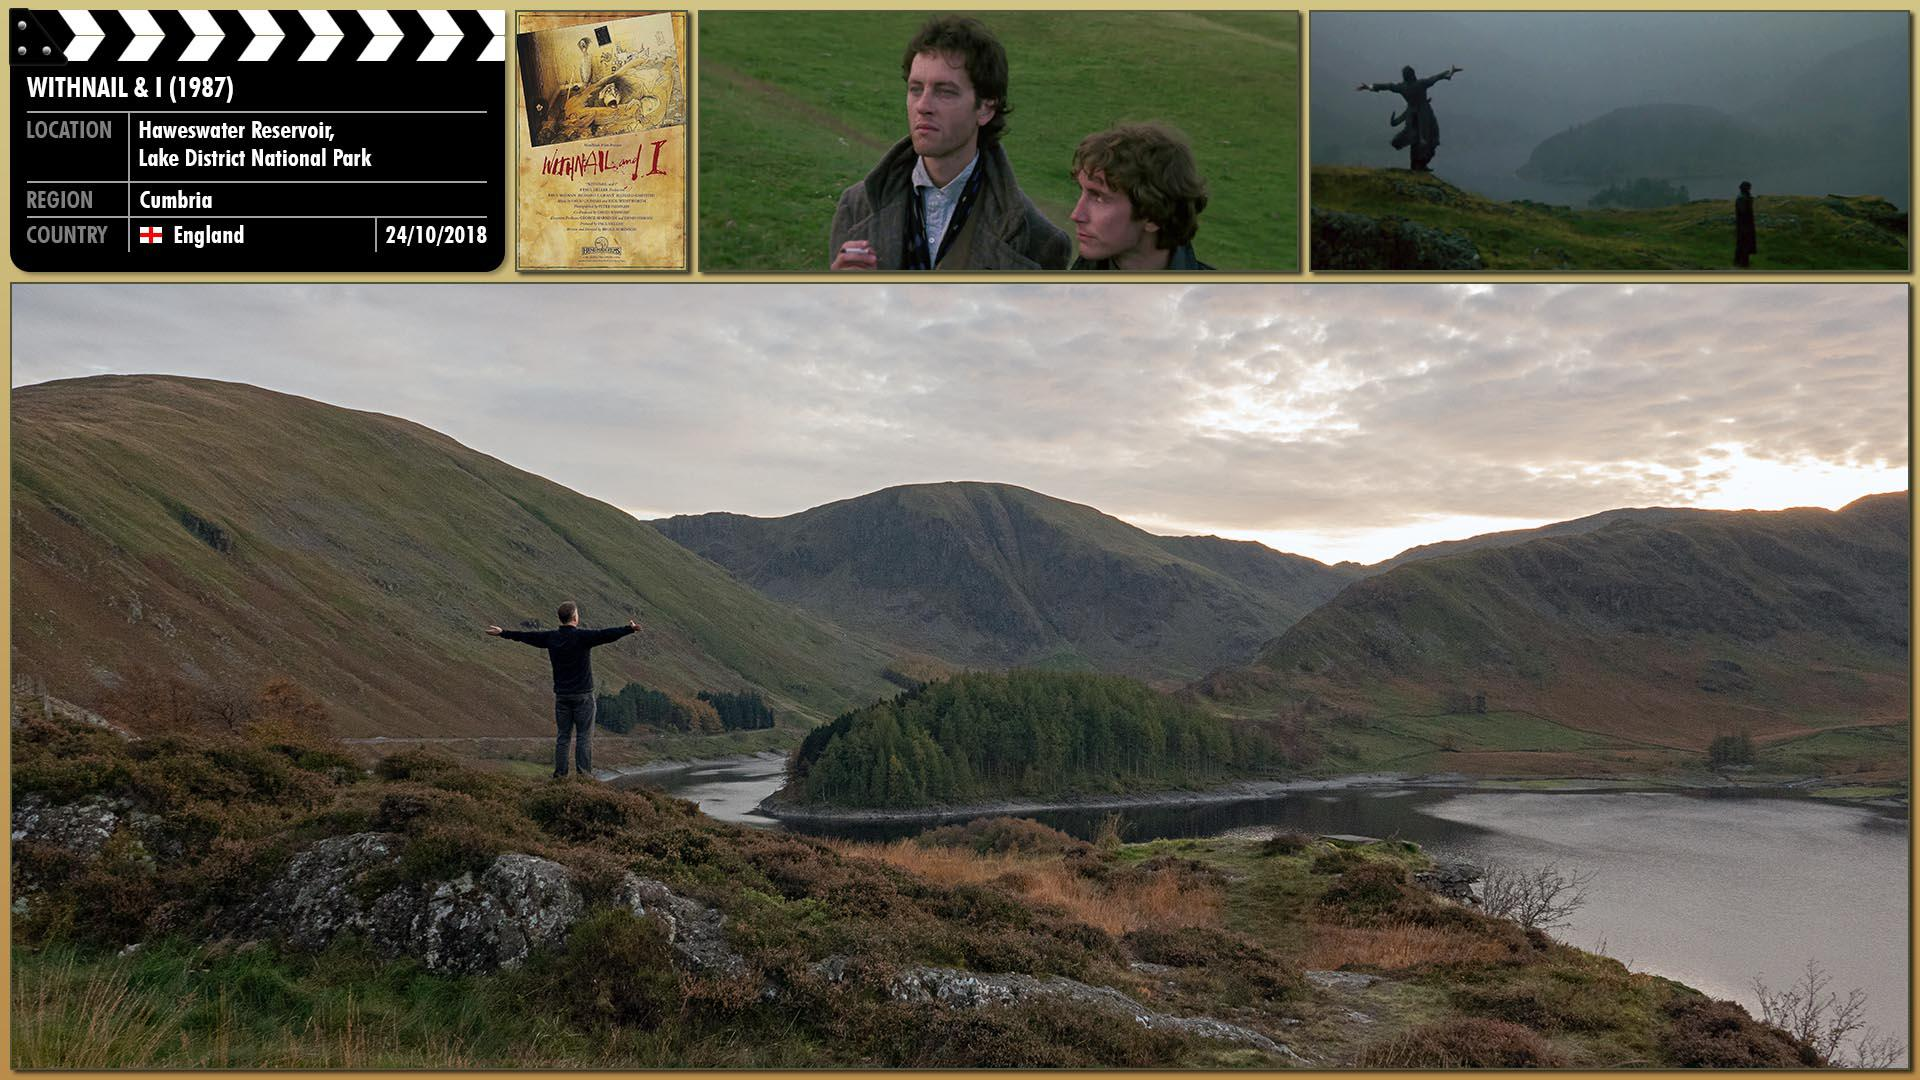 Filming location photo for Withnail & I (1987) 4 of 7